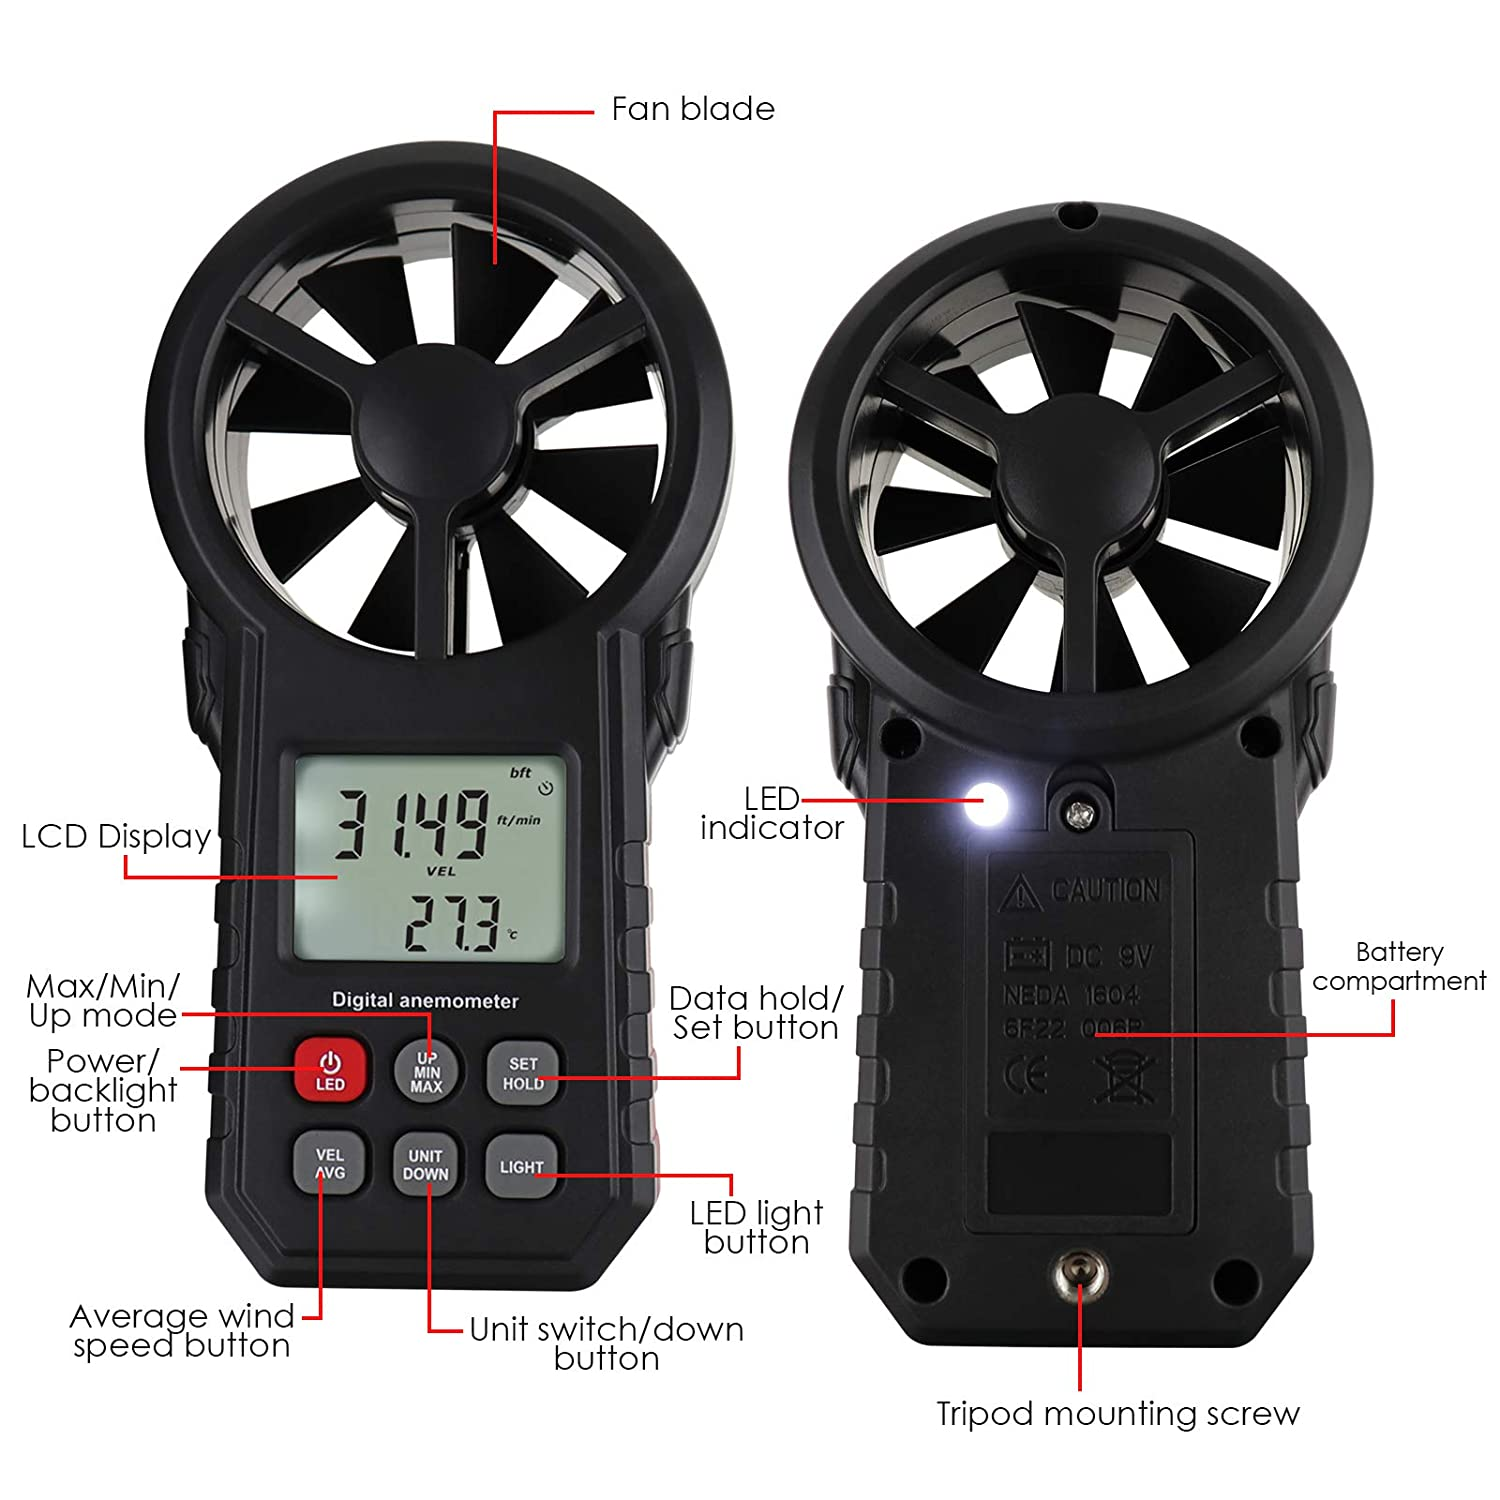 Gain Express Digital Vane Anemometer Handheld Wind Speed Temperature Meter Air Velocity Wind Chill Tester Gauge with MAX//MIN//AVG//Current Measurement Backlight